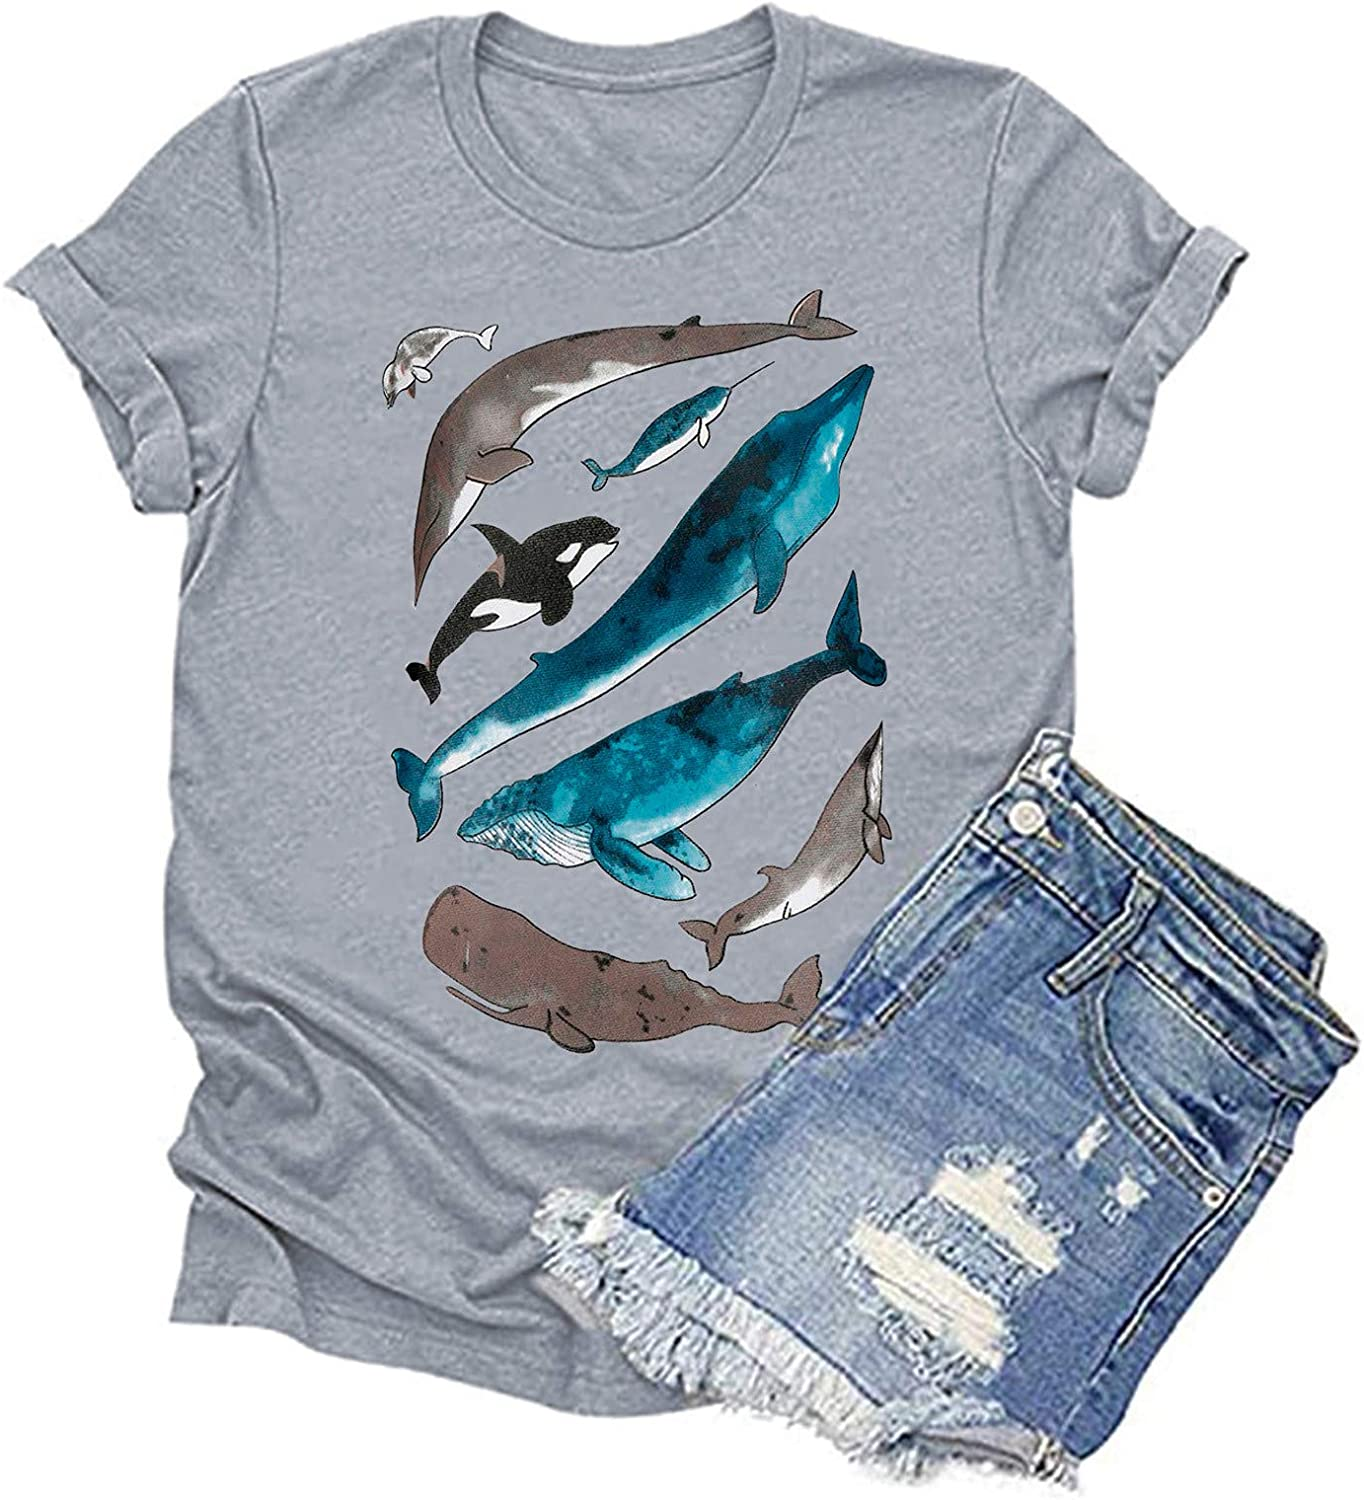 Graphic Tees NEW before selling ☆ for A surprise price is realized Women Teen Girls Sleeve Sea Vintage Short Theme